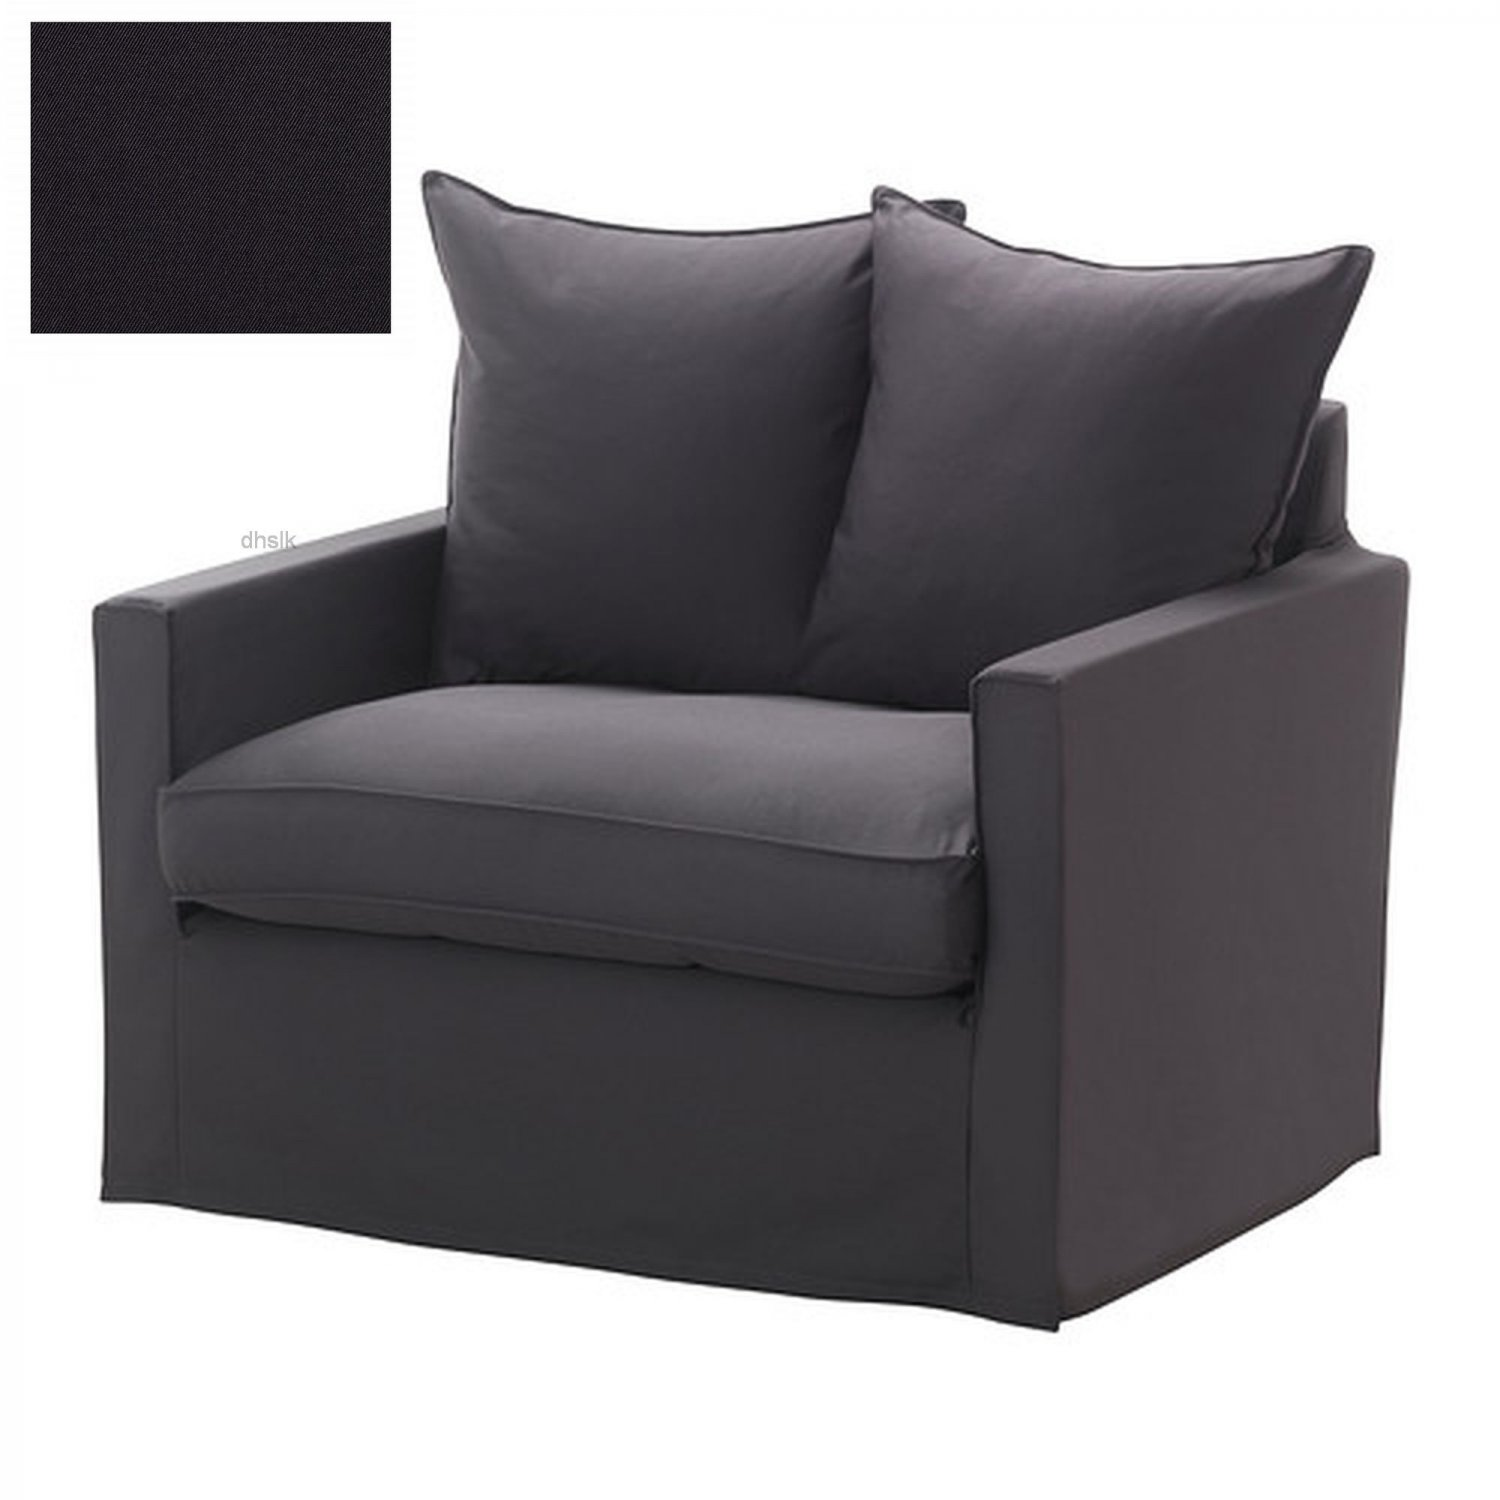 chair cover in australia rubber floor protectors for legs ikea harnosand 1 seat slipcover armchair